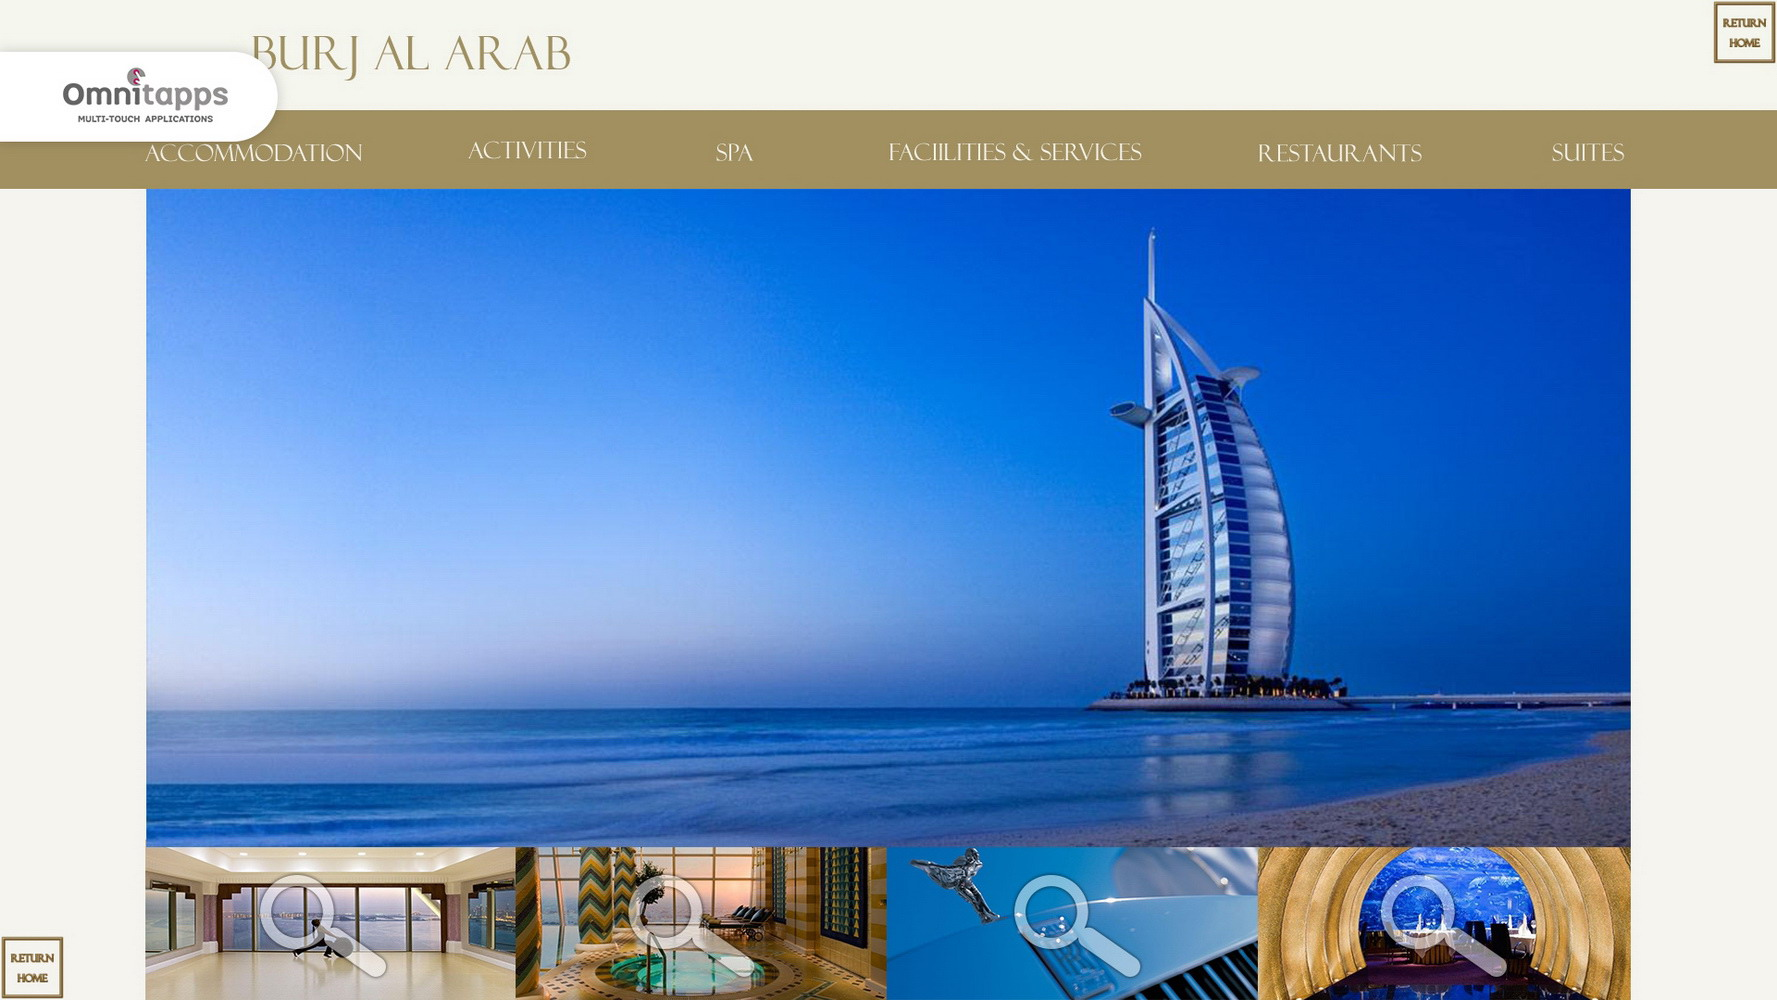 Composer_Demo_Burjalarab (3)